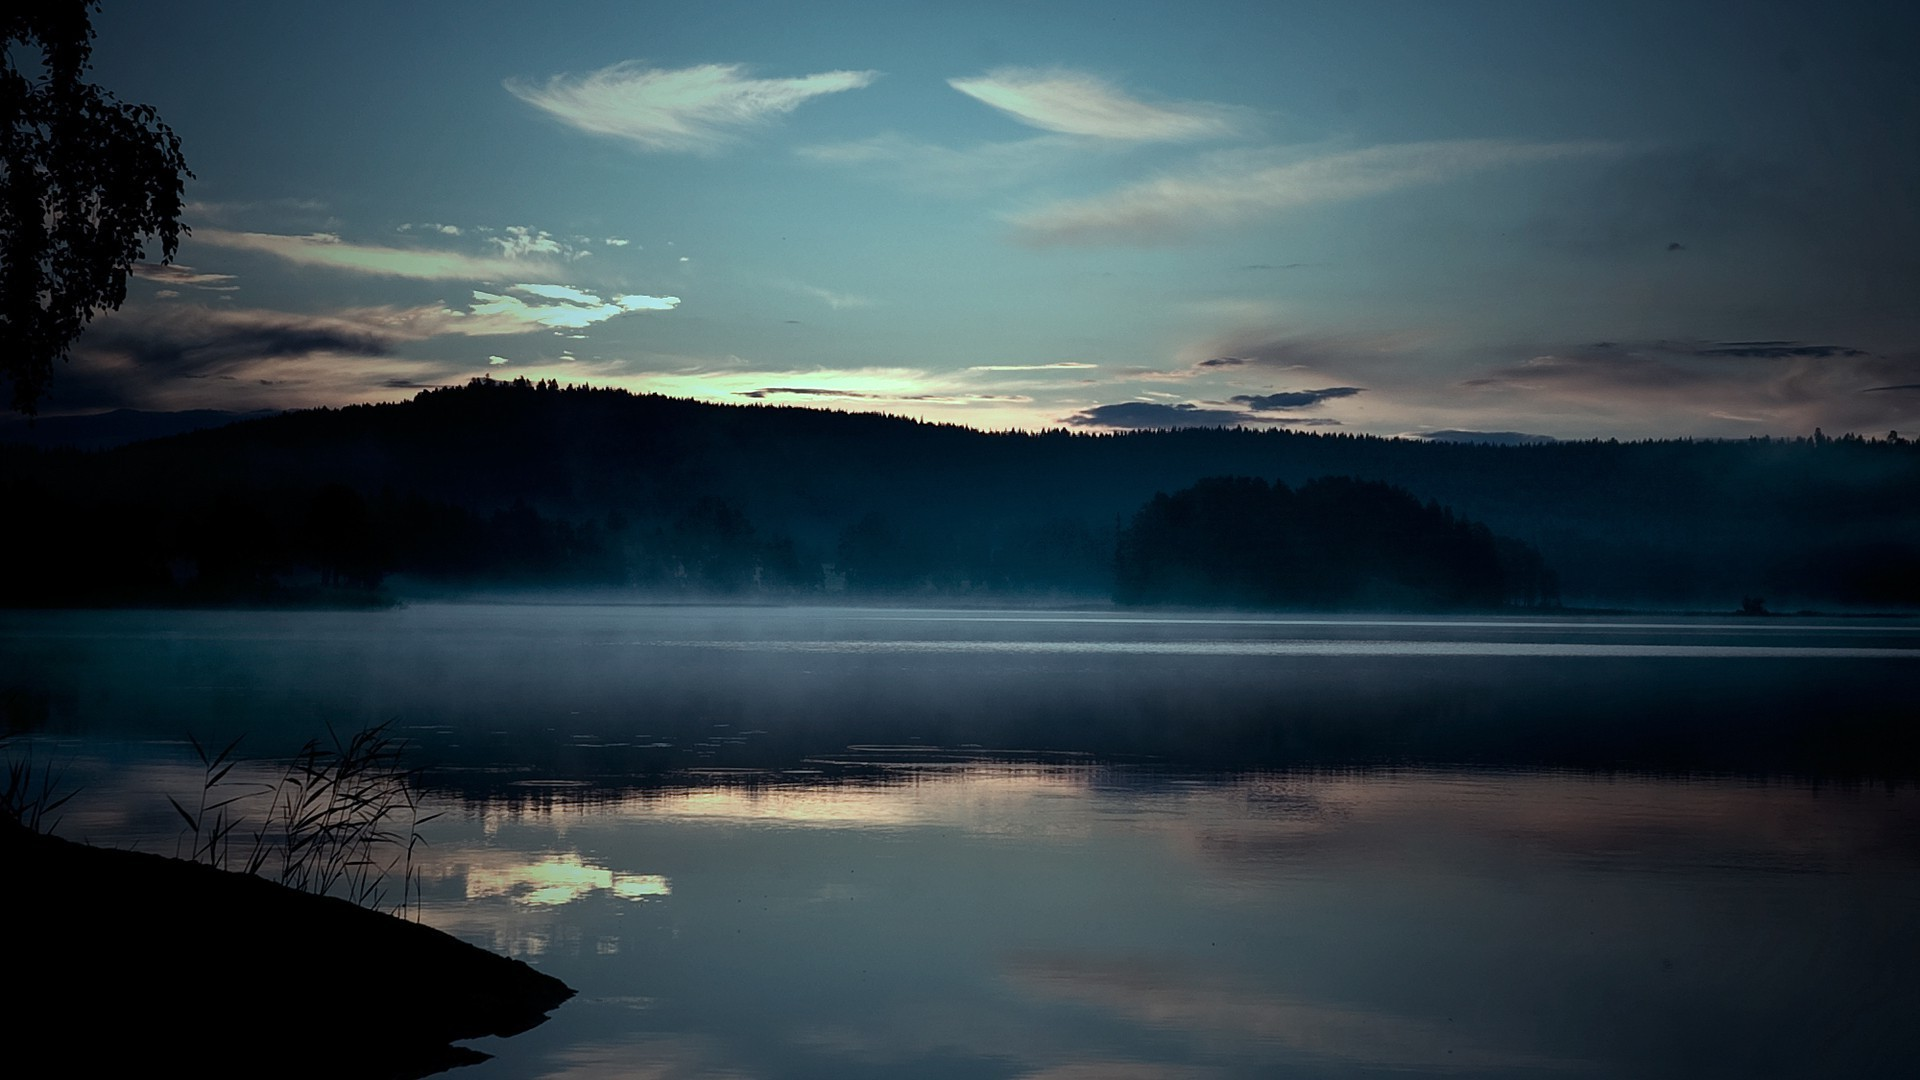 Misty Lake Surface wallpapers HD free - 416450